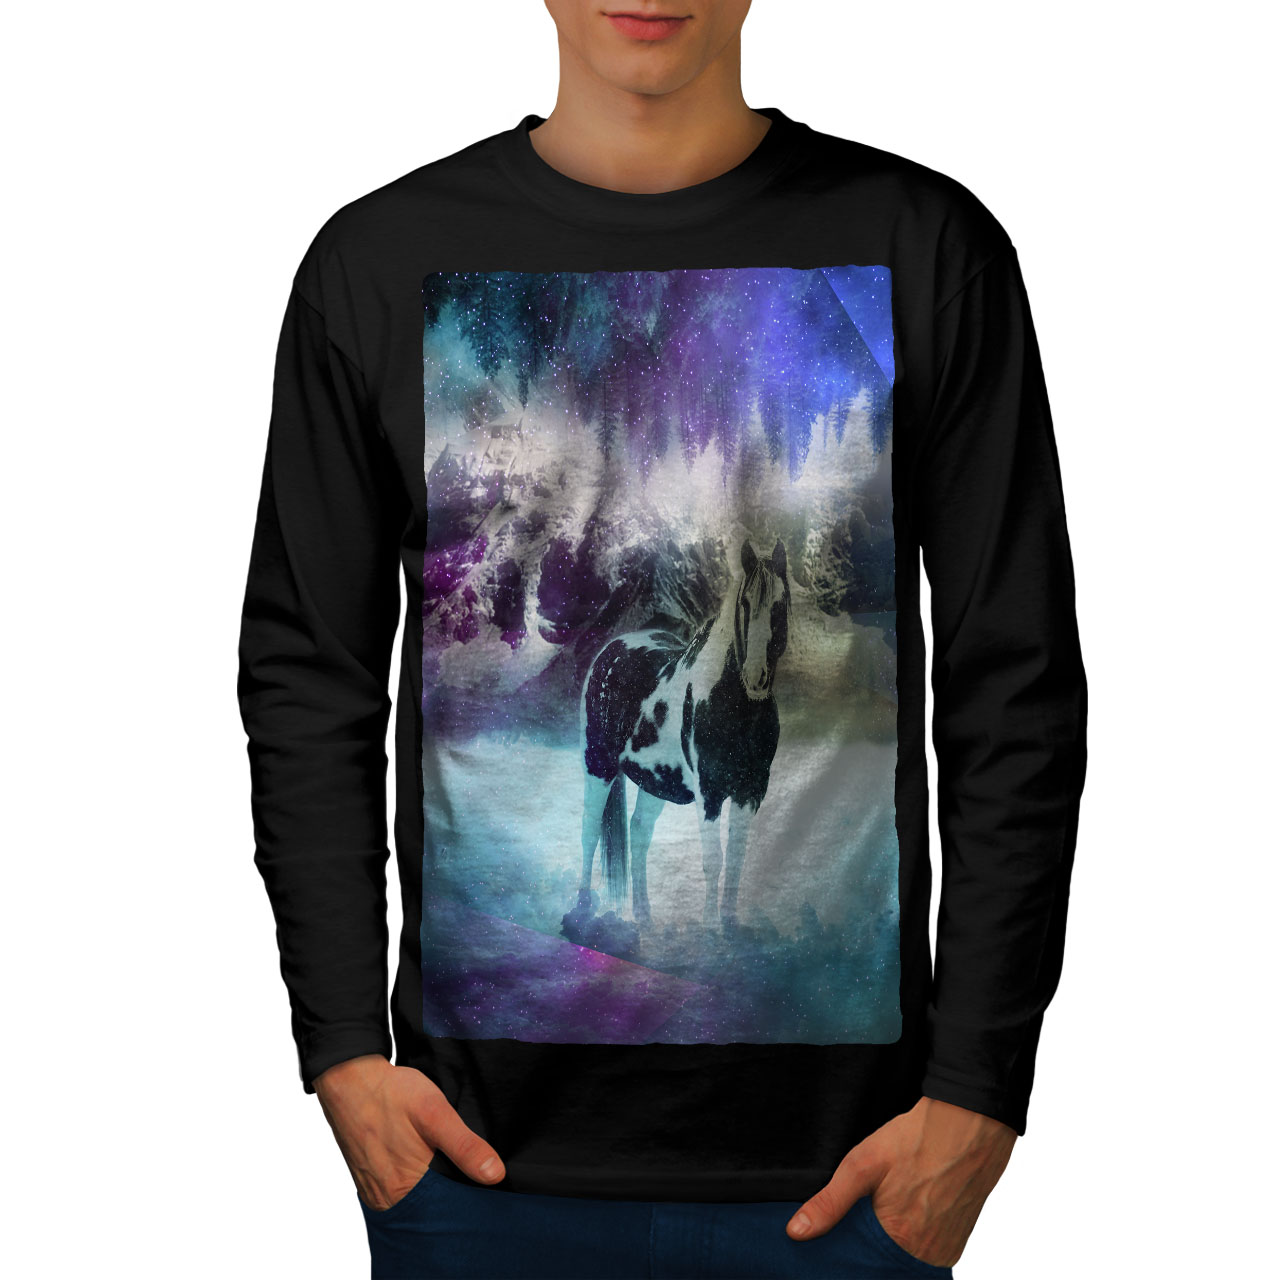 Astronomy Space Graphic Design Wellcoda Constelations Mens Long Sleeve T-shirt